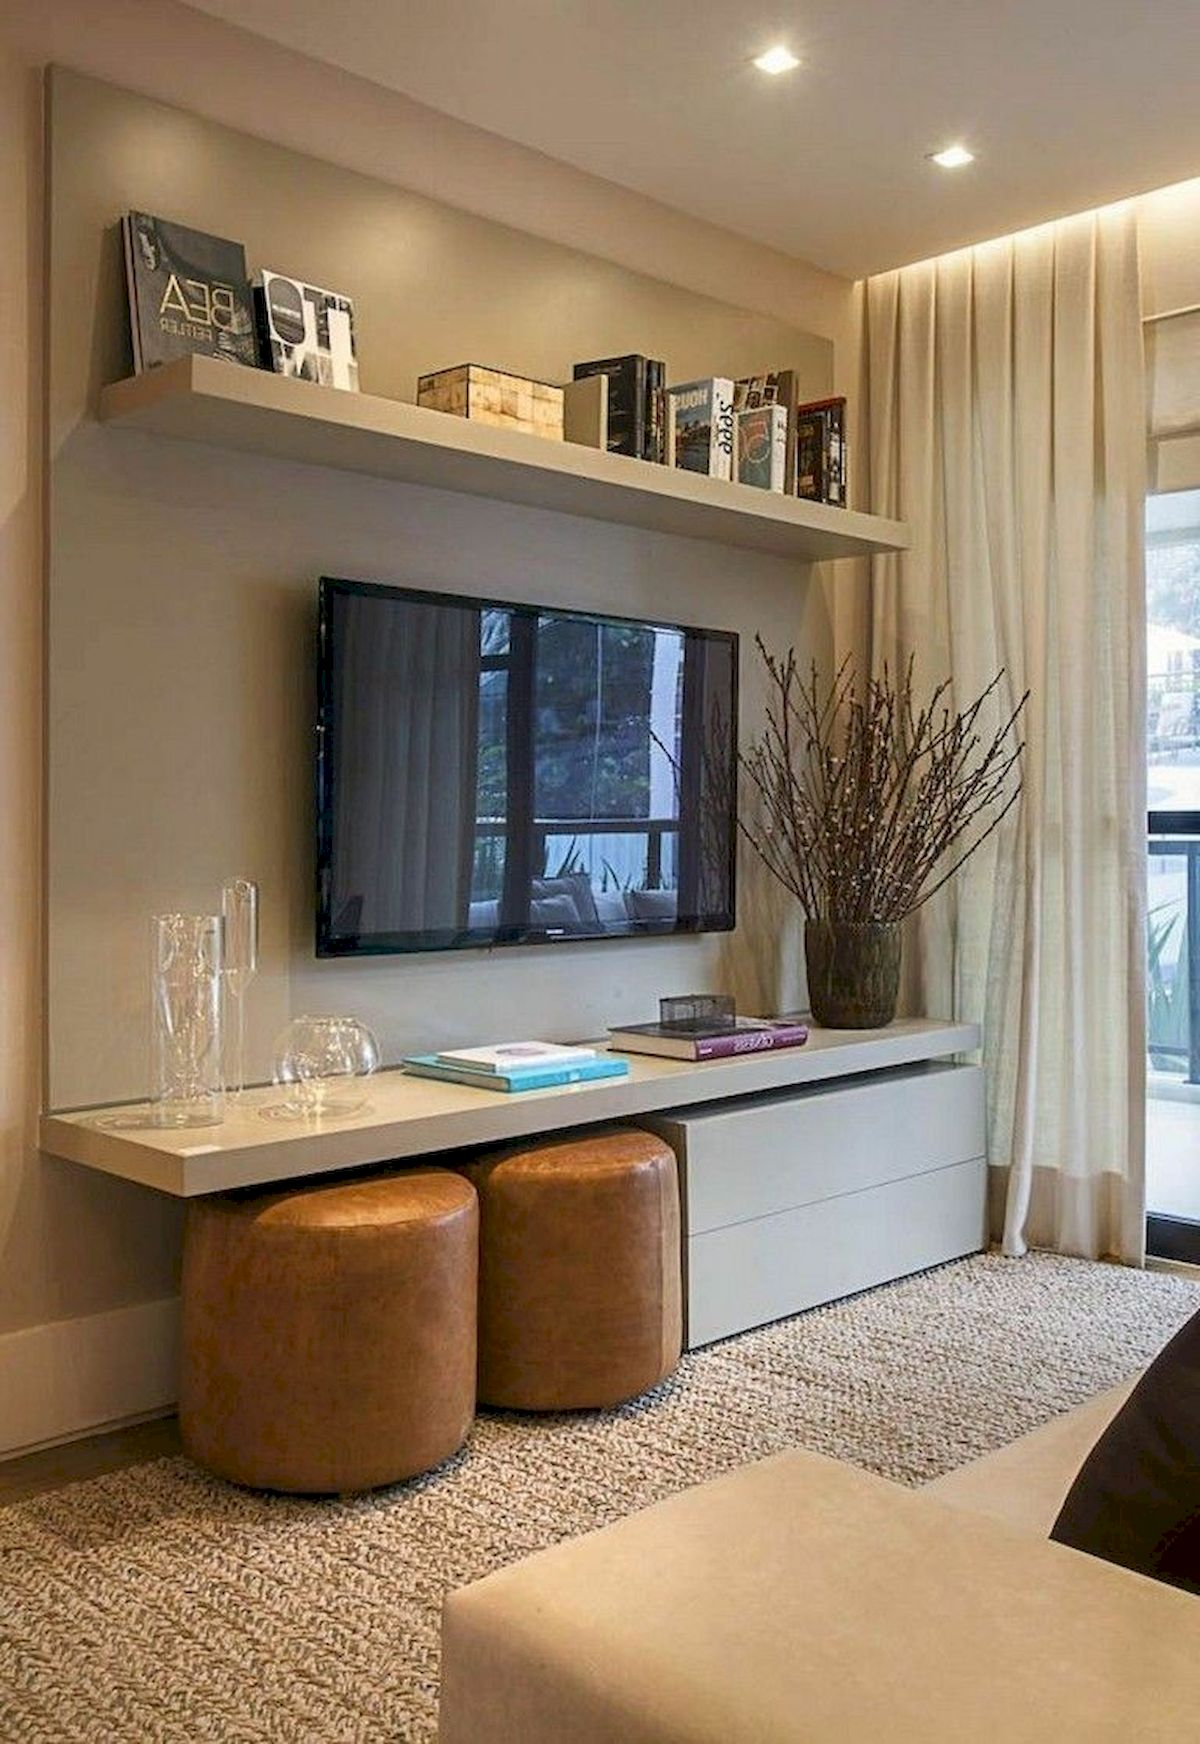 75+Awesome Apartement Decorating Ideas (47)